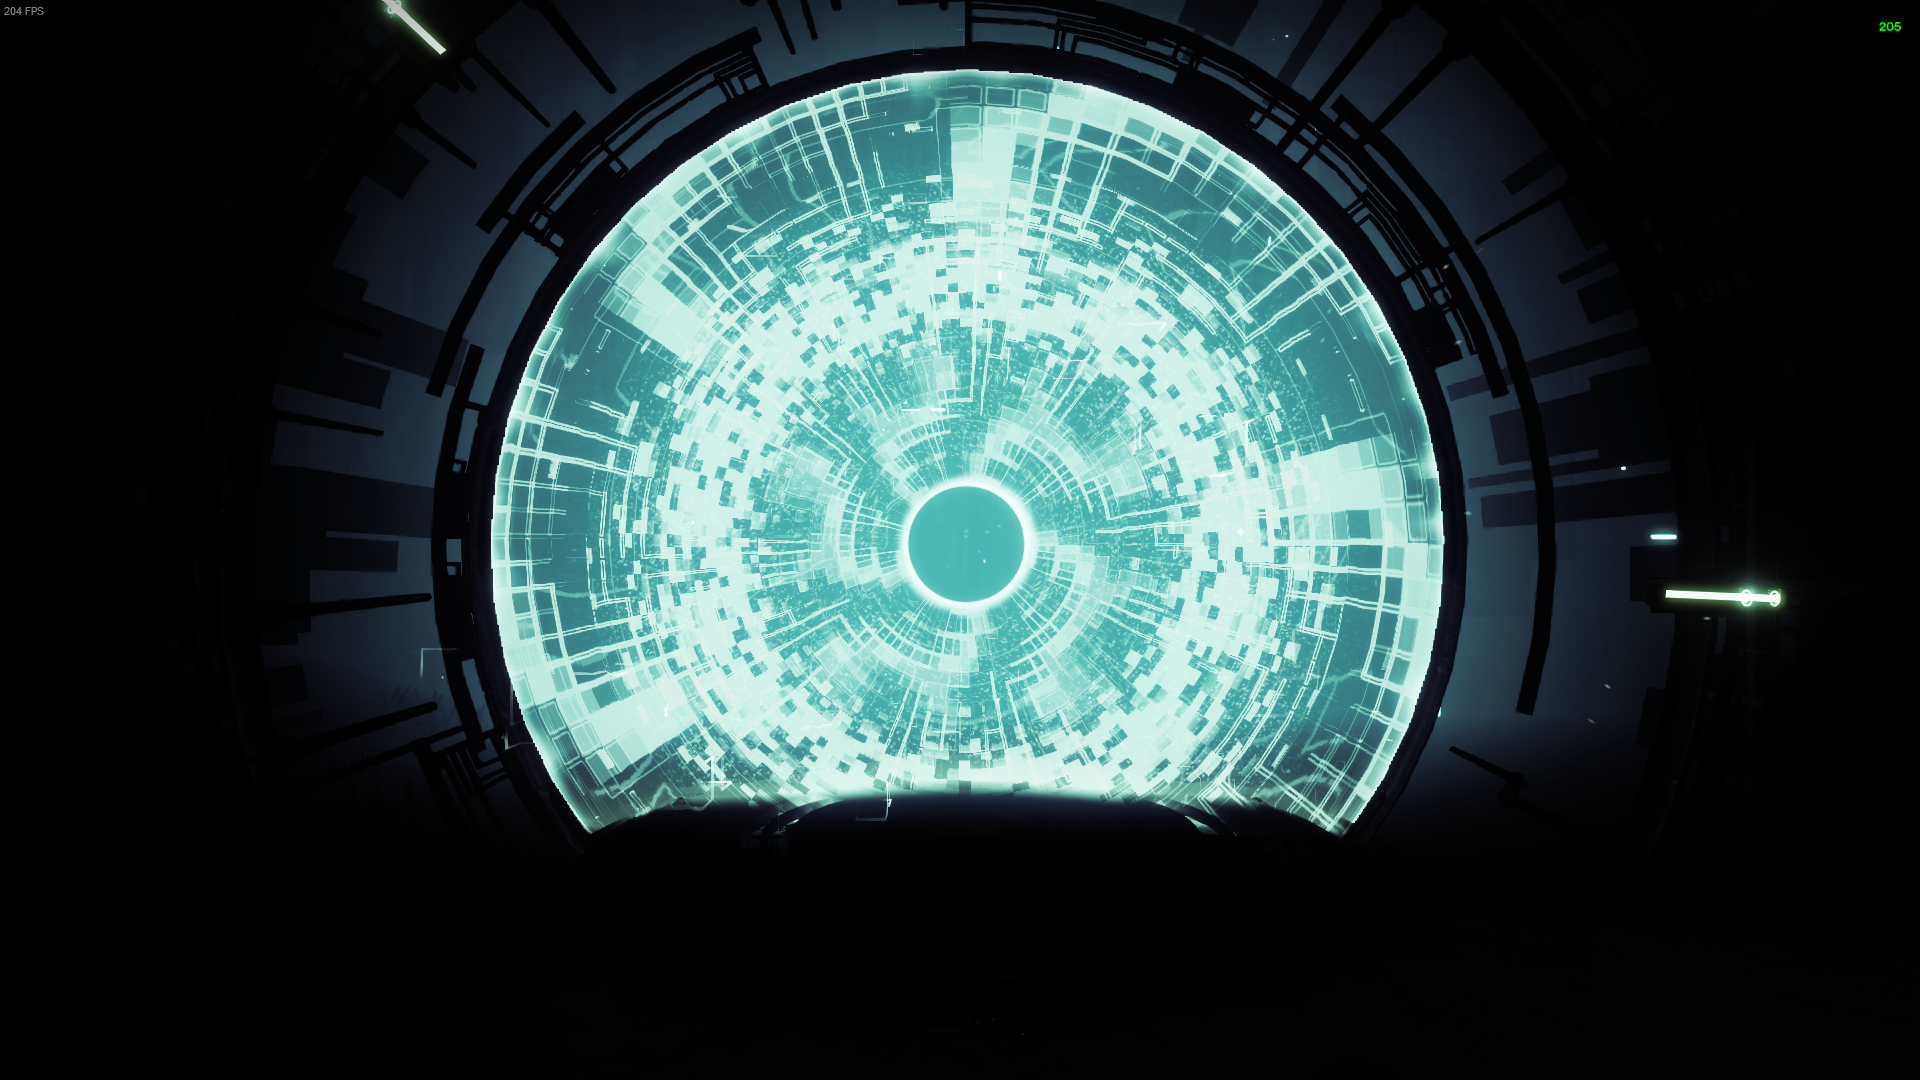 A Vex portal stands contrasted against a completely black background. The subtle glow highlighting the machinery around it. The pattern has changed since the last screenshot.